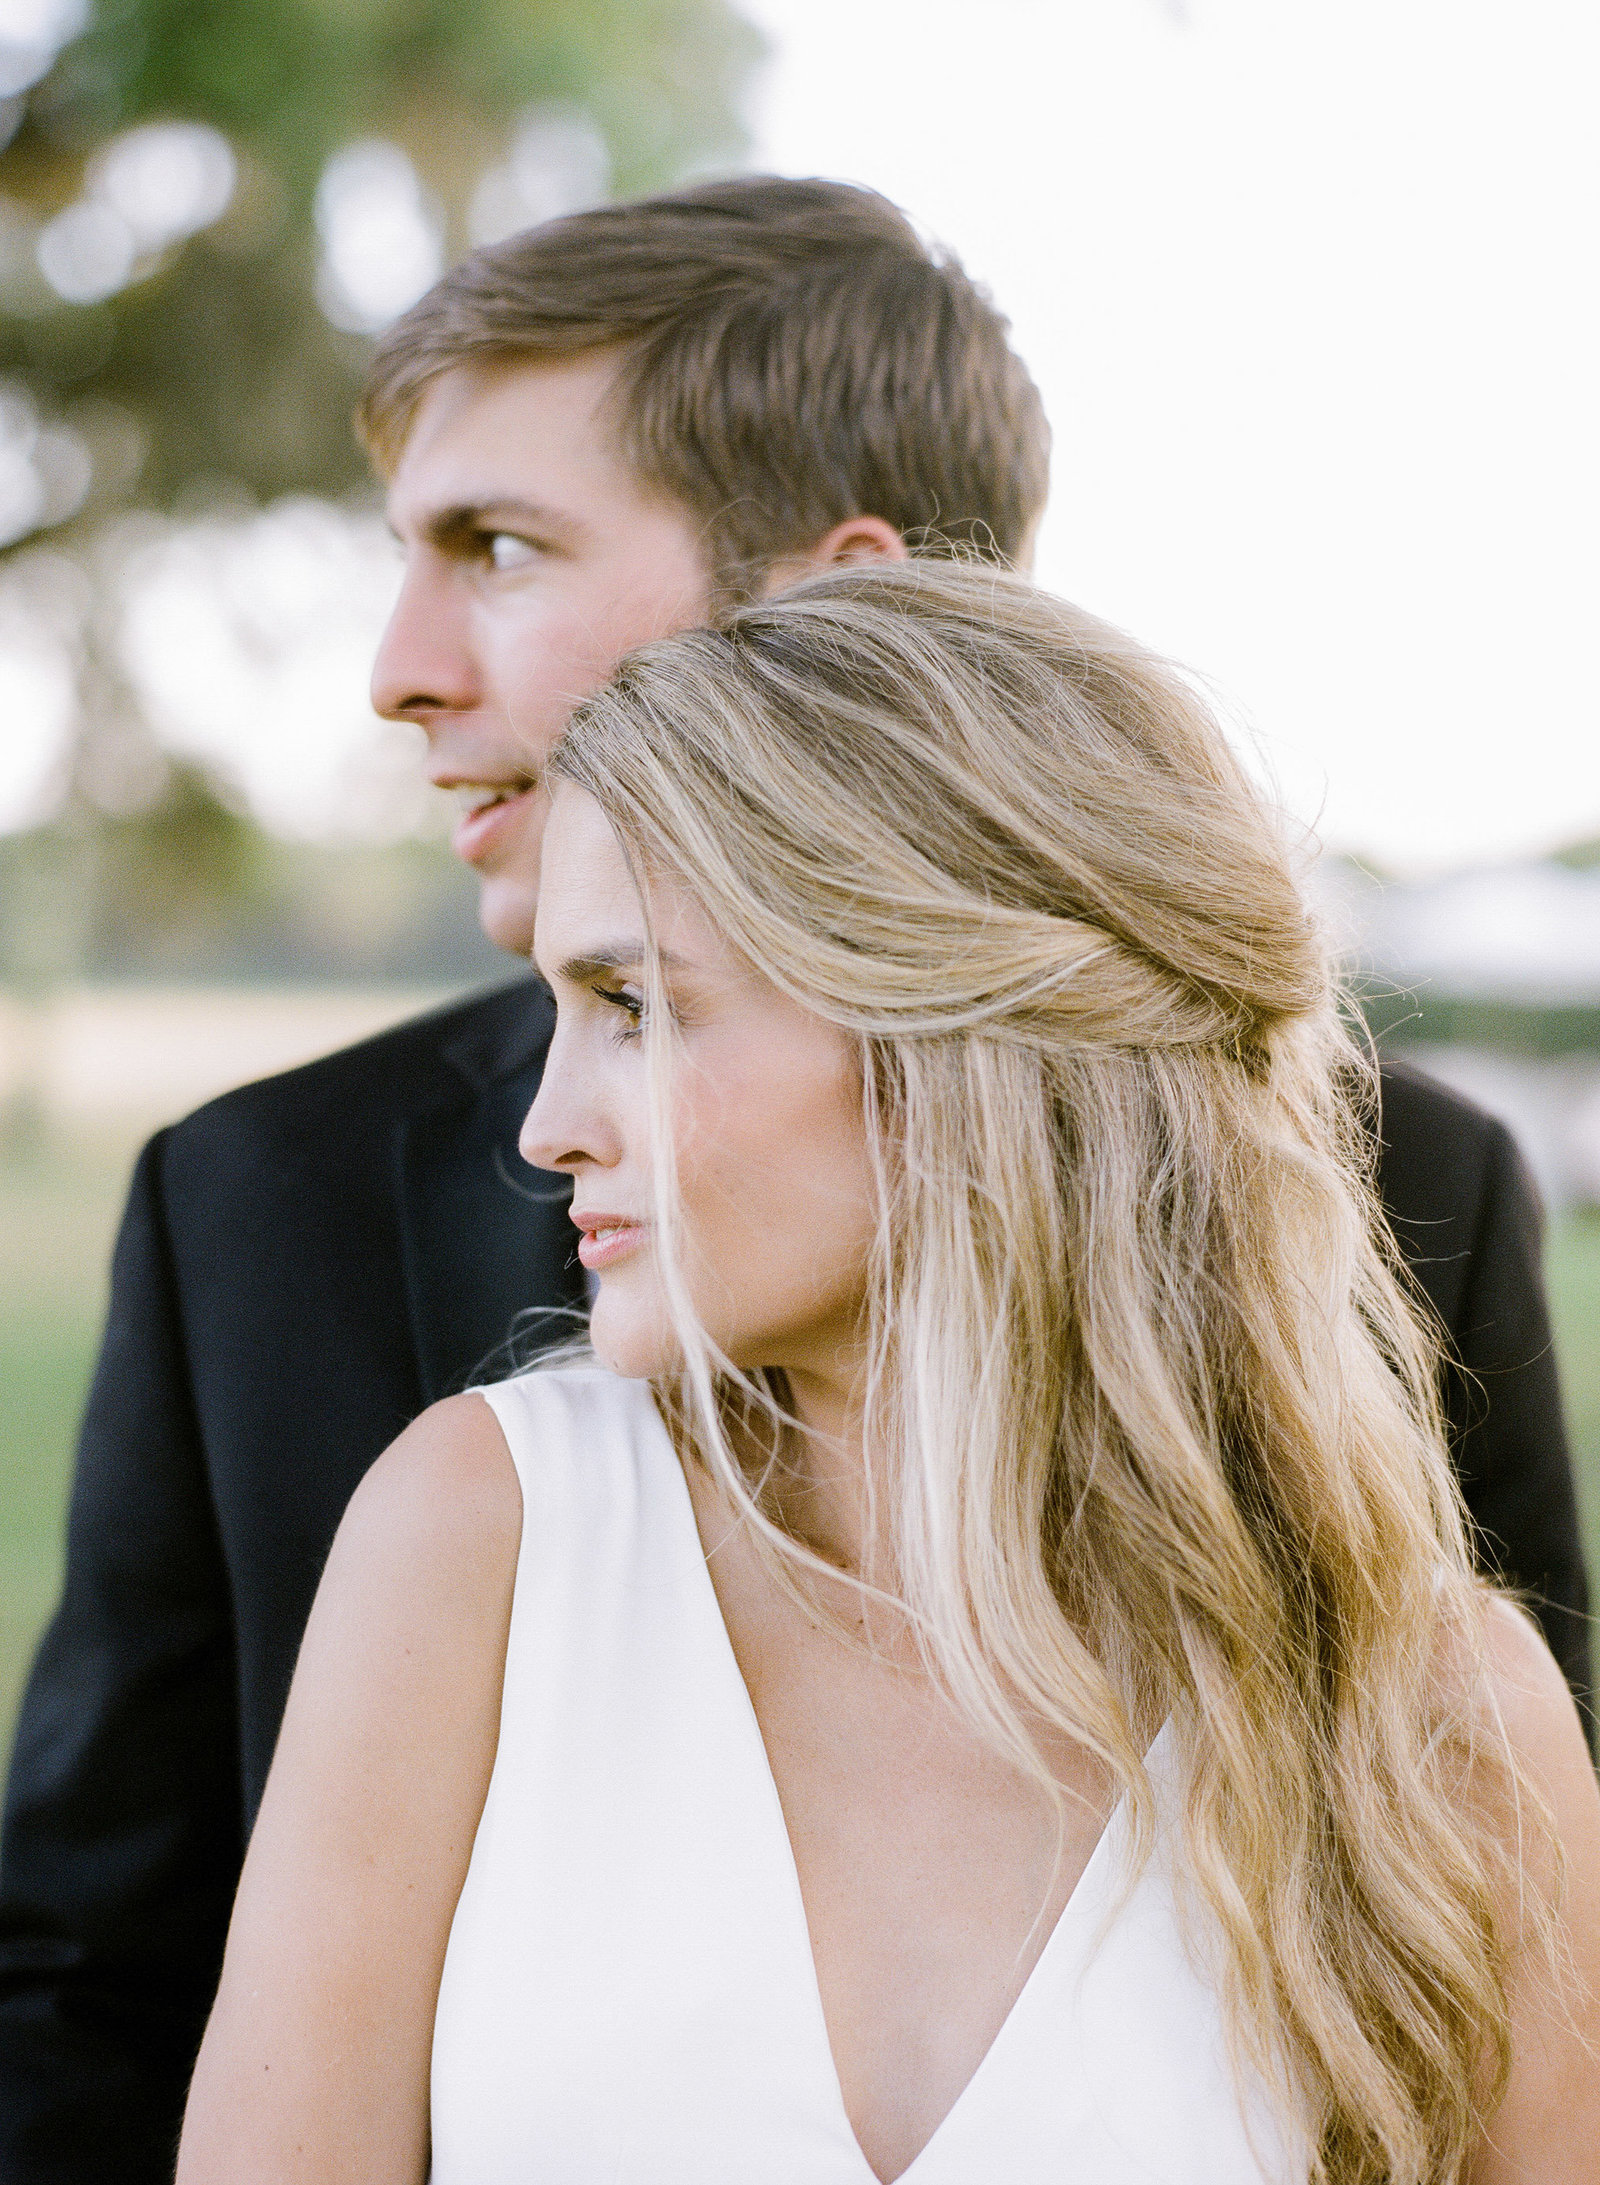 20190526-Pura-Soul-Photo-Caroline-Daniel-Wedding-790